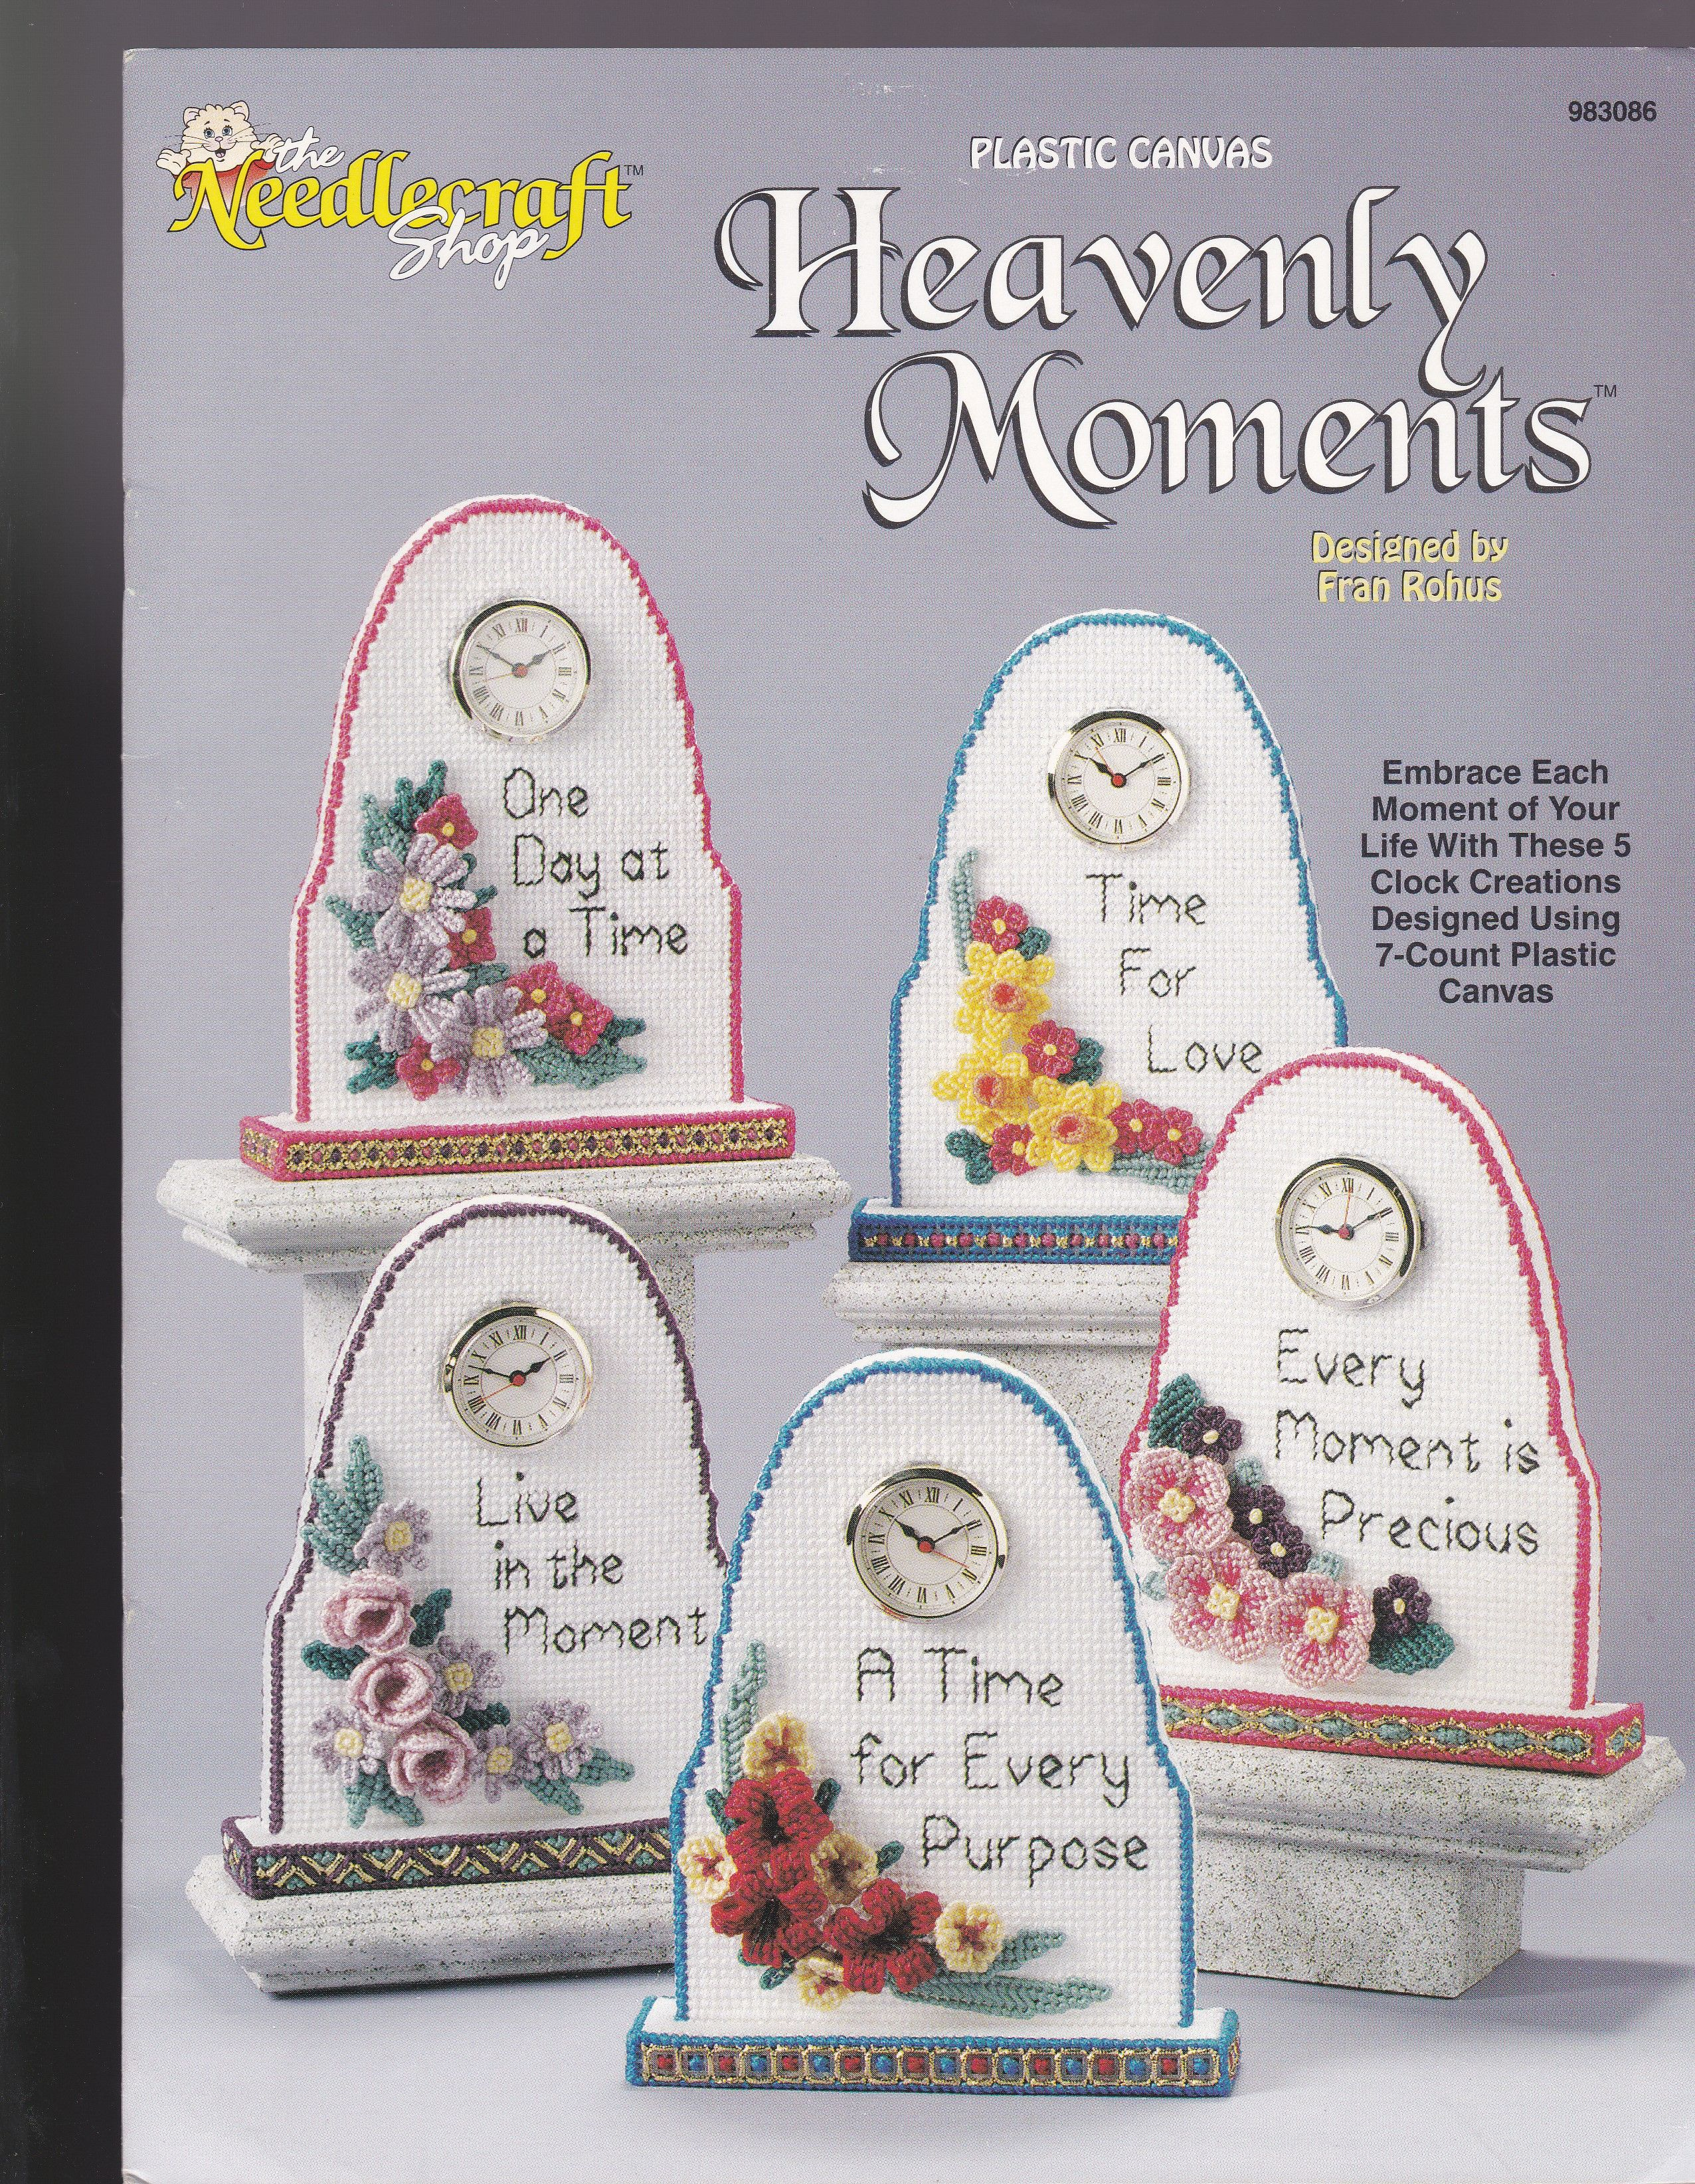 Pin by susan bilbrey on pc religious patterns pinterest clocks stitching patterns cross stitching plastic canvas patterns heavenly clocks crosses pc sewing patterns embroidery designs jeuxipadfo Images